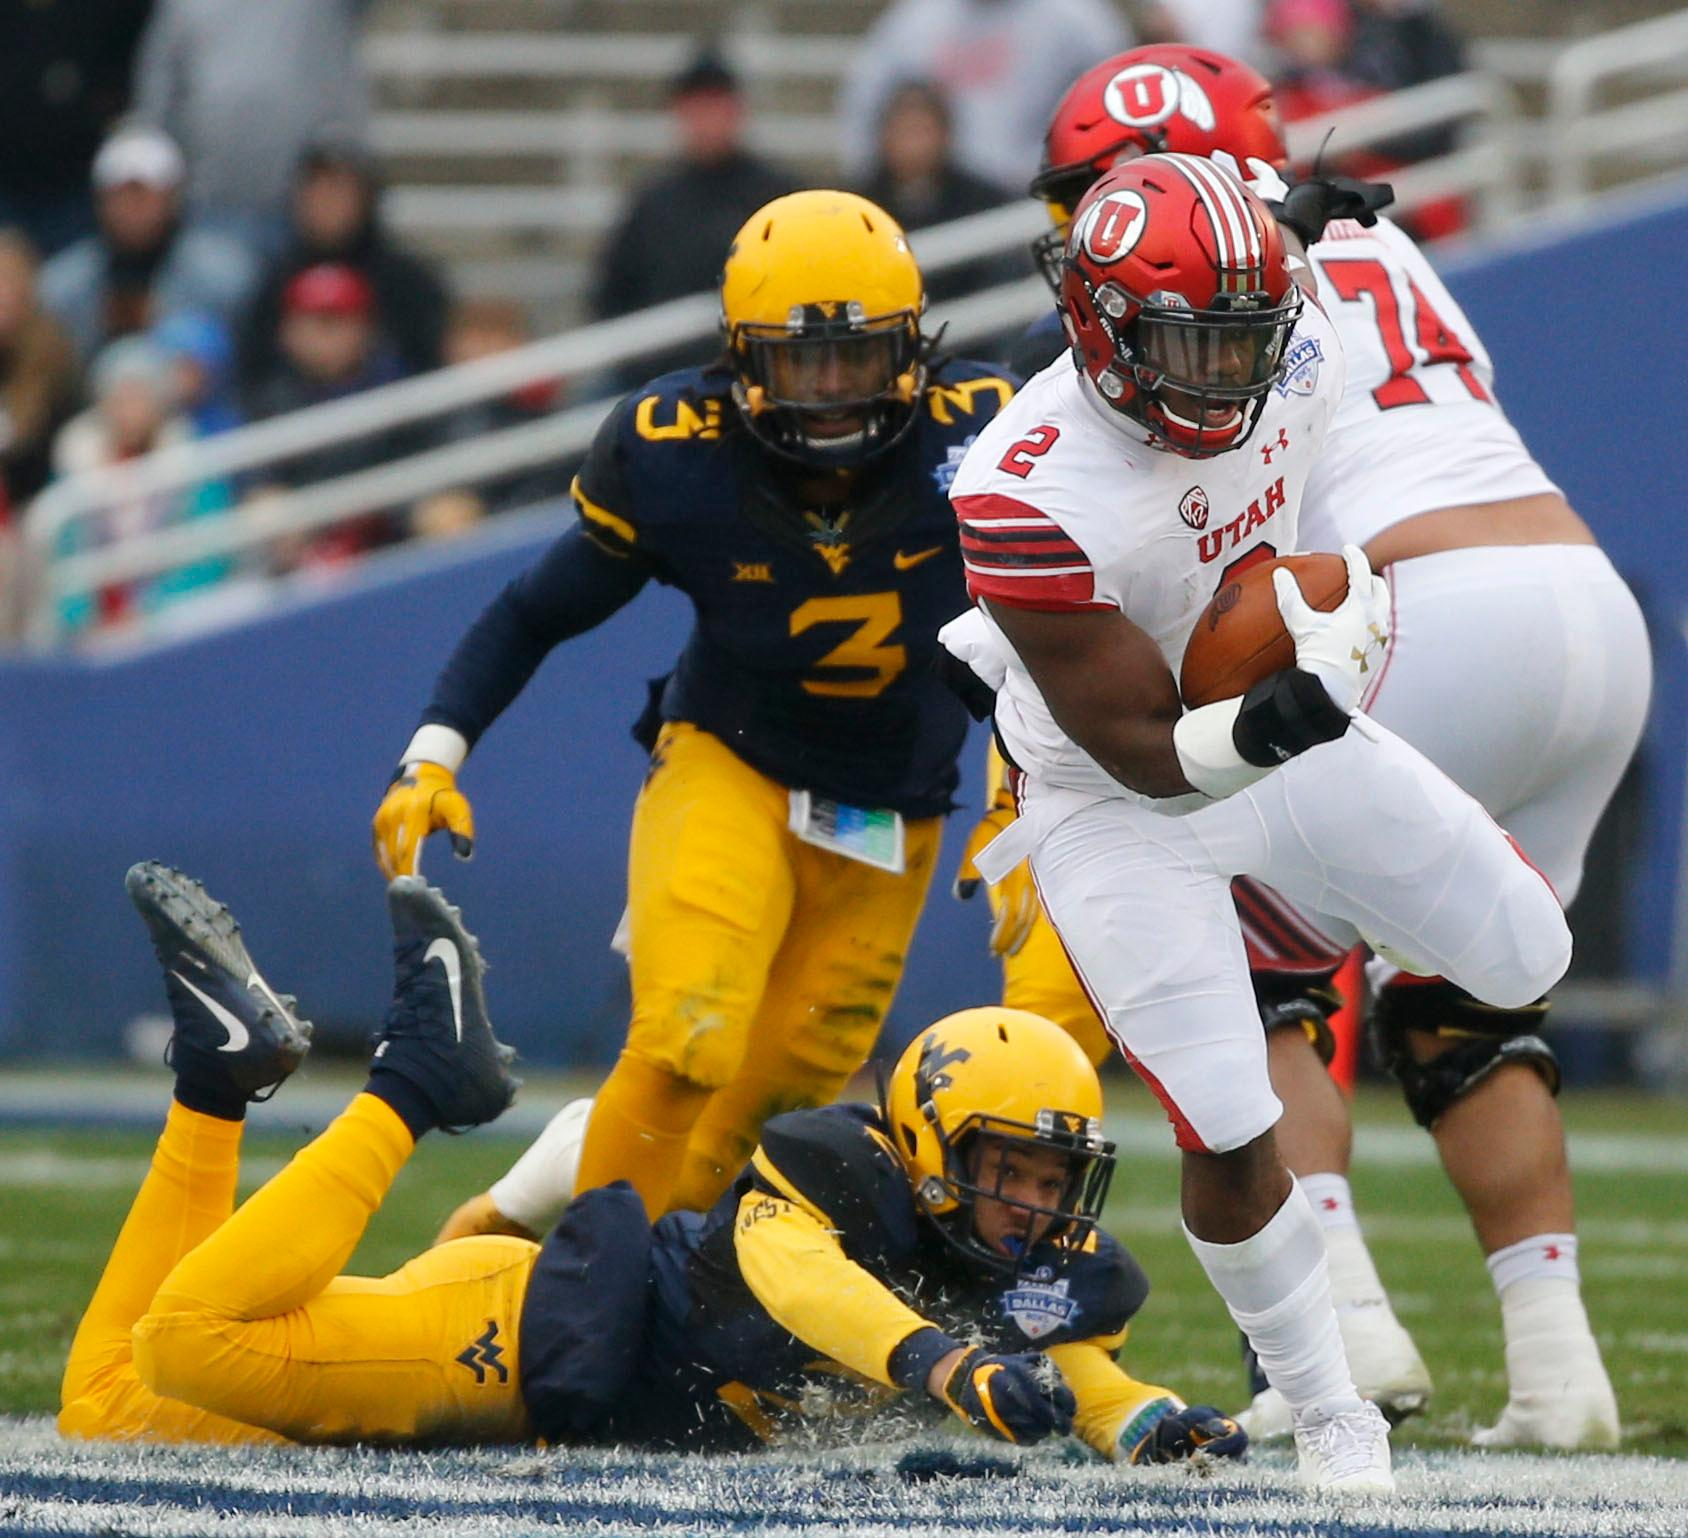 CORRECTS DAY TO TUESDAY Utah running back Zack Moss (2) runs the ball against West Virginia during the first half of Zaxby's Heart of Dallas Bowl at Cotton Bowl Stadium in Dallas on Tuesday, Dec. 26, 2017. (Rose Baca/The Dallas Morning News via AP)